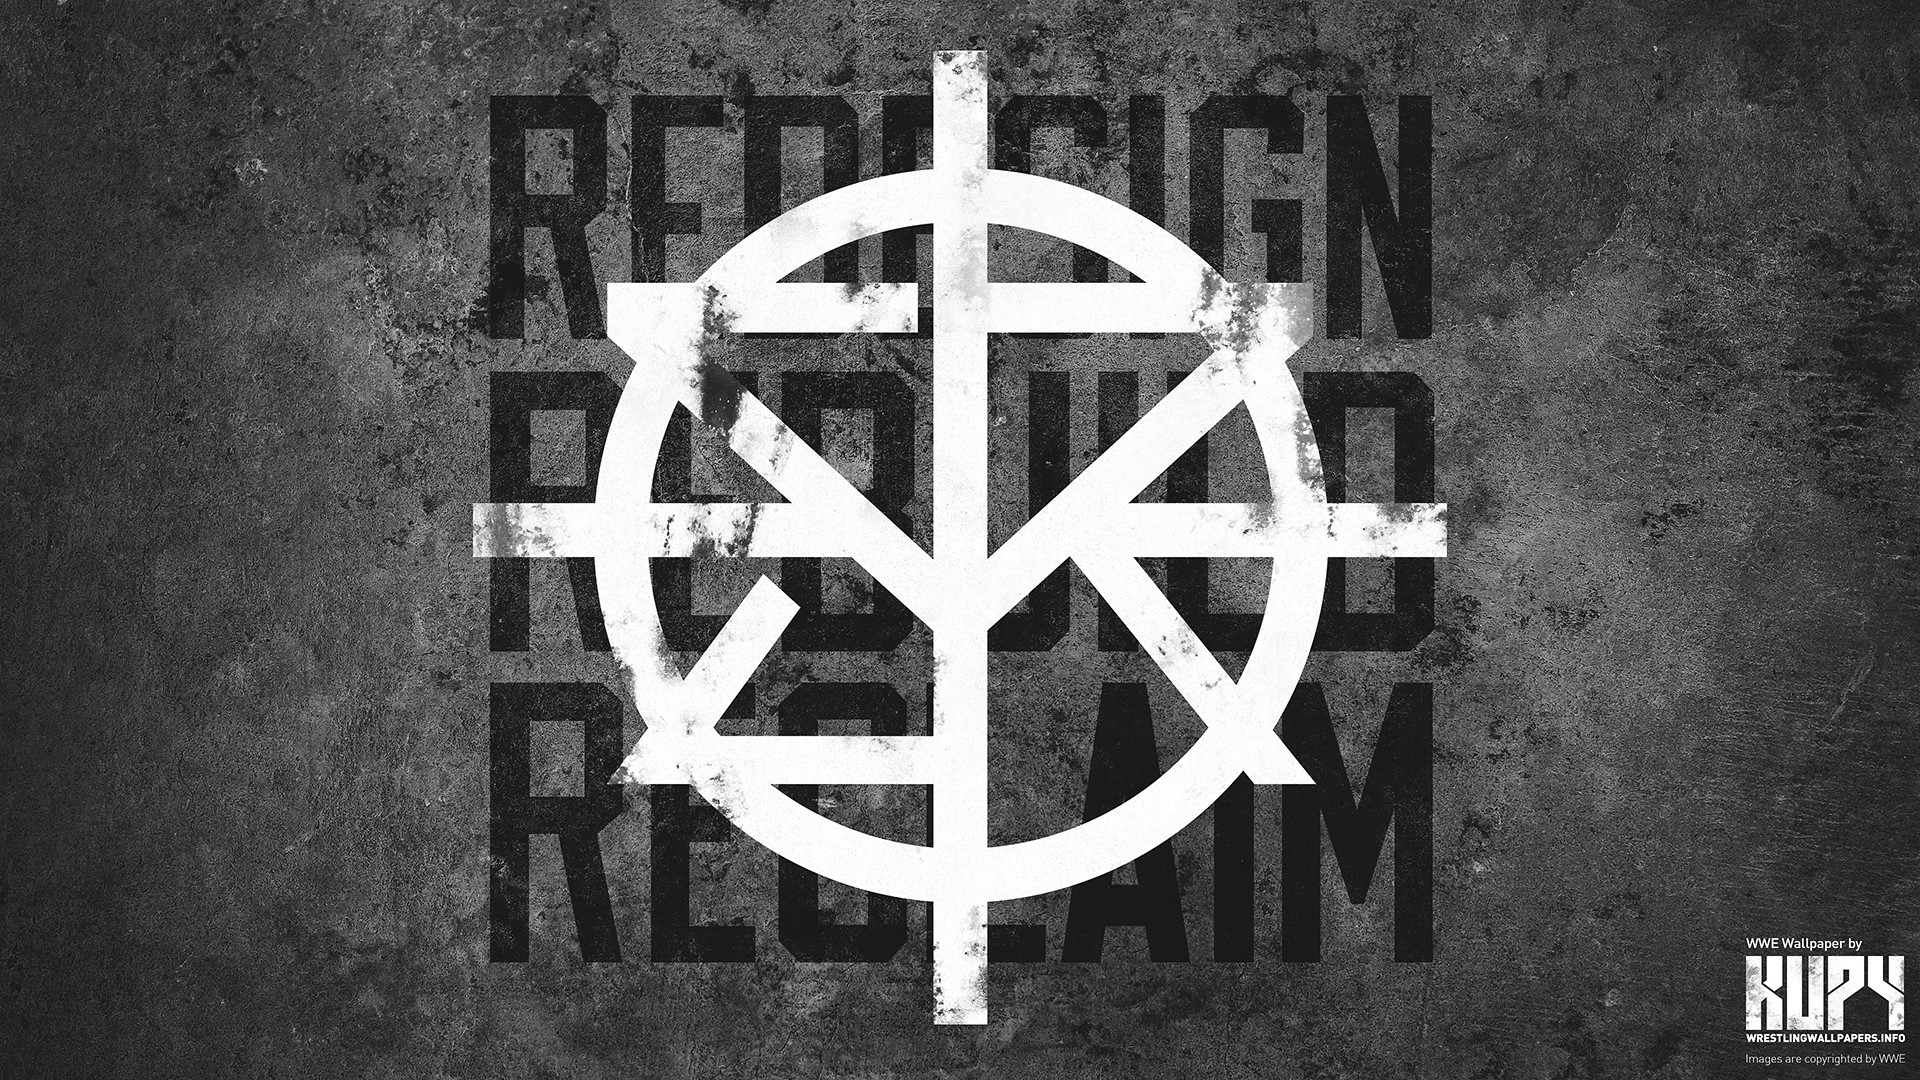 Wonderful Wallpaper Logo Roman Reigns - 498231-roman-reigns-logo-wallpapers-1920x1080-for-mobile-hd  Perfect Image Reference_969797.jpg